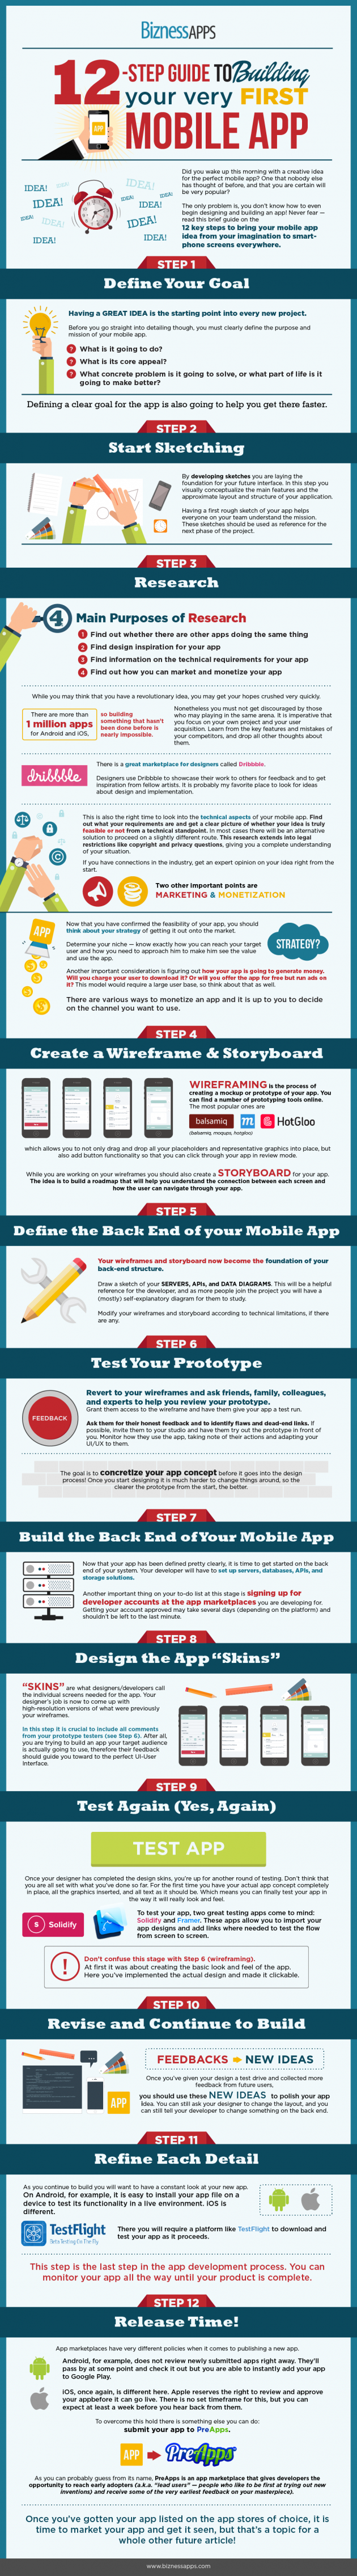 How to Build a Mobile App for Your Business in 12 Easy Steps (Infographic)…